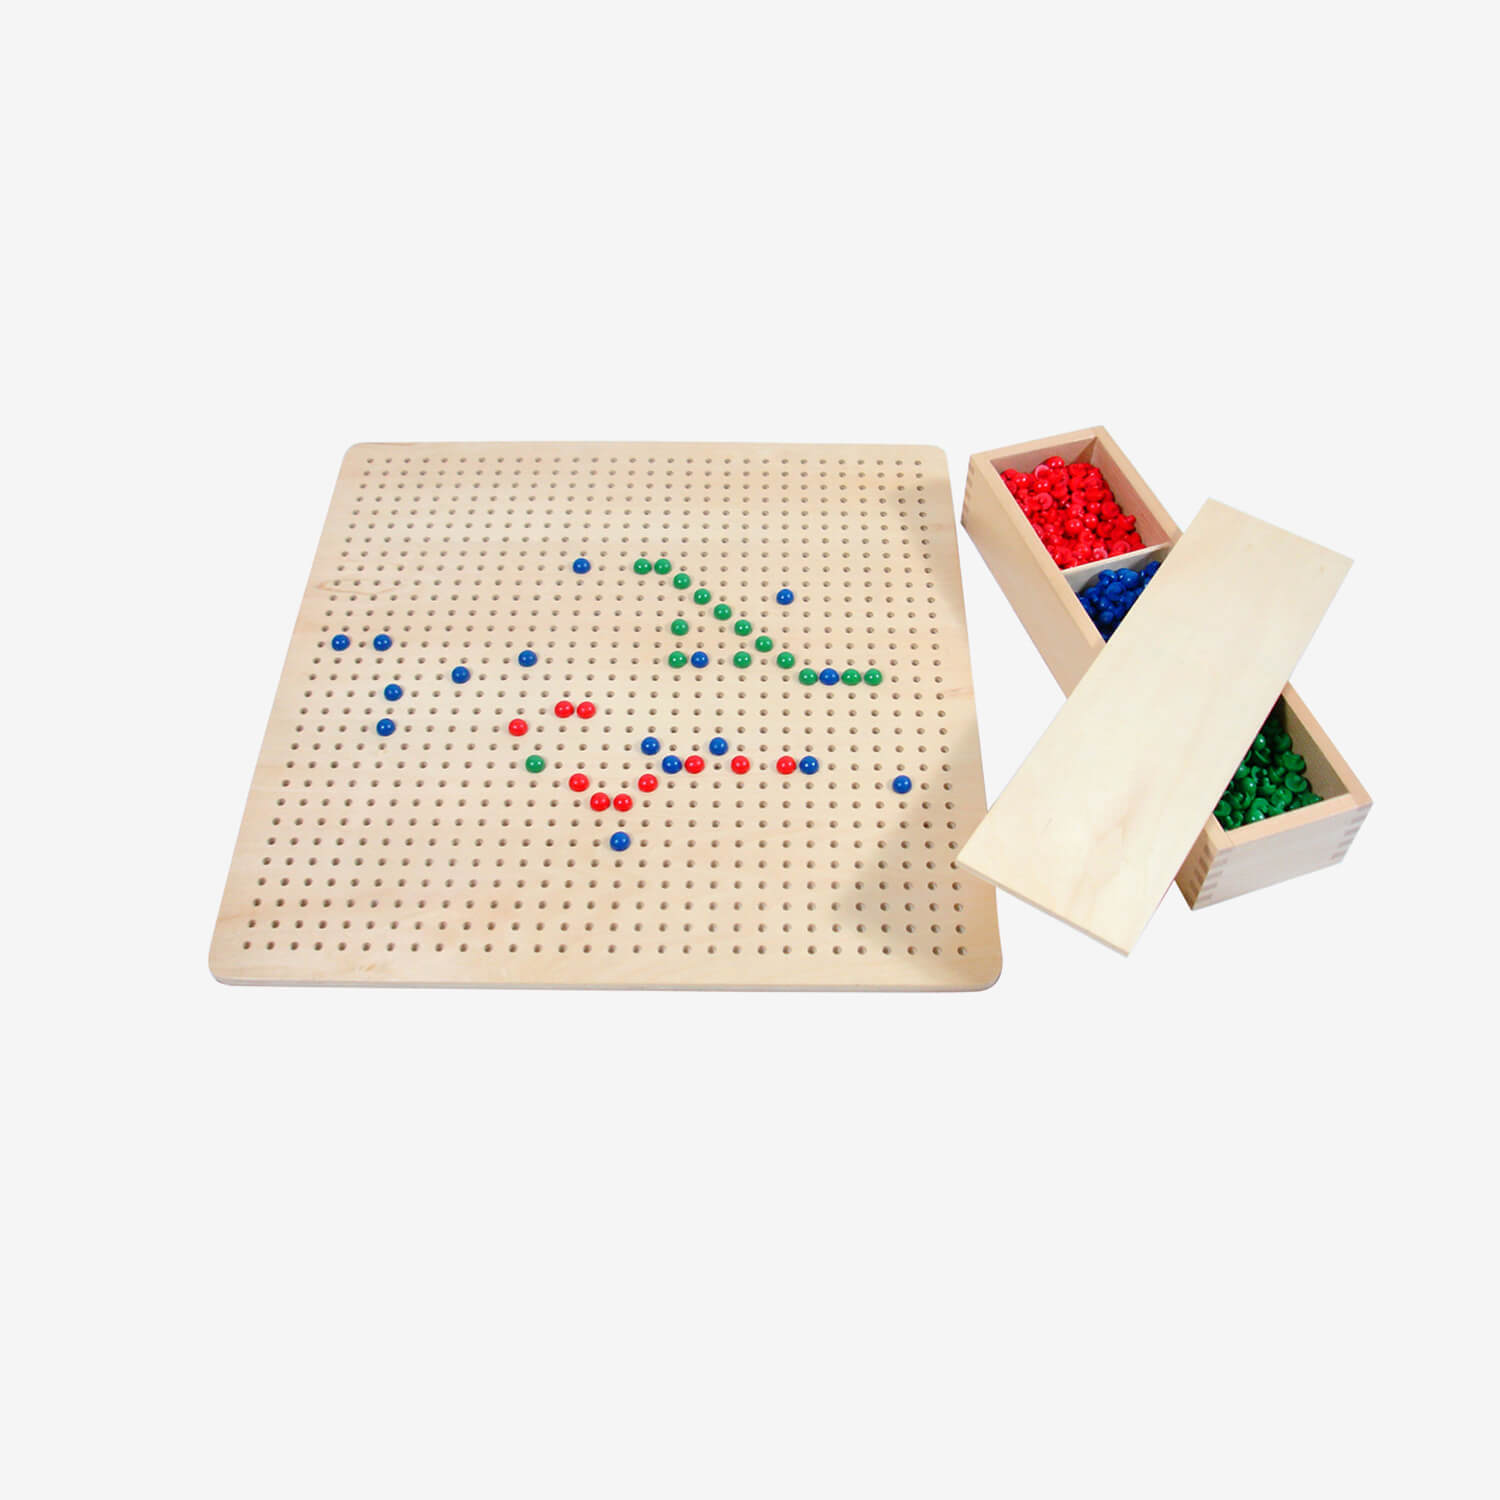 Algebraic Peg Board With Pegs